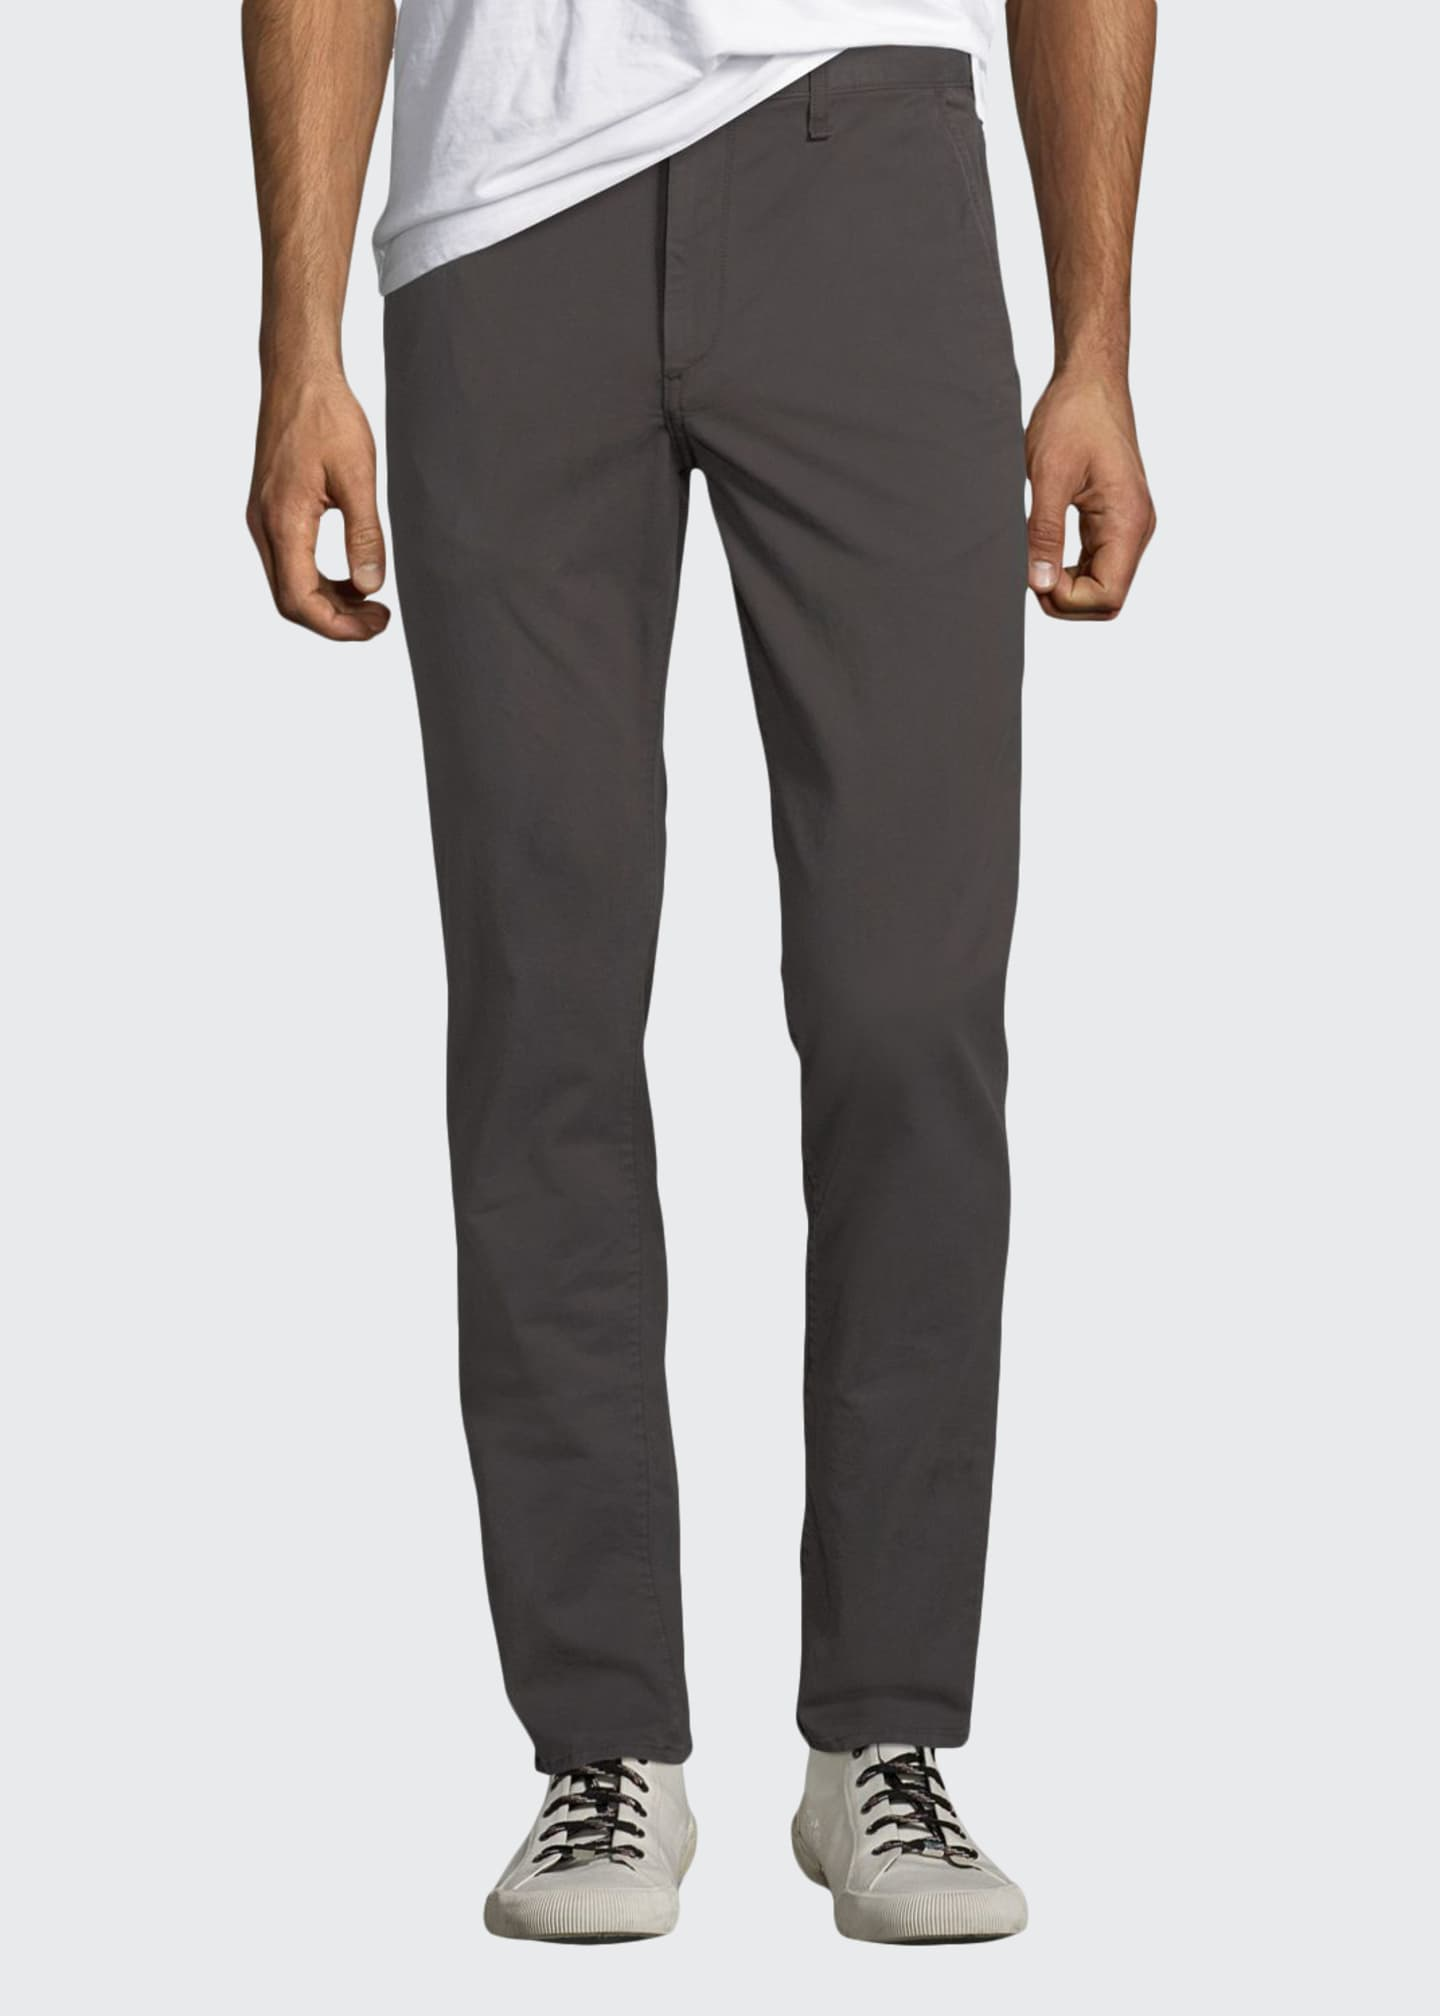 Image 1 of 3: Men's Standard Issue Fit 2 Mid-Rise Relaxed Slim-Fit Jeans, Gray